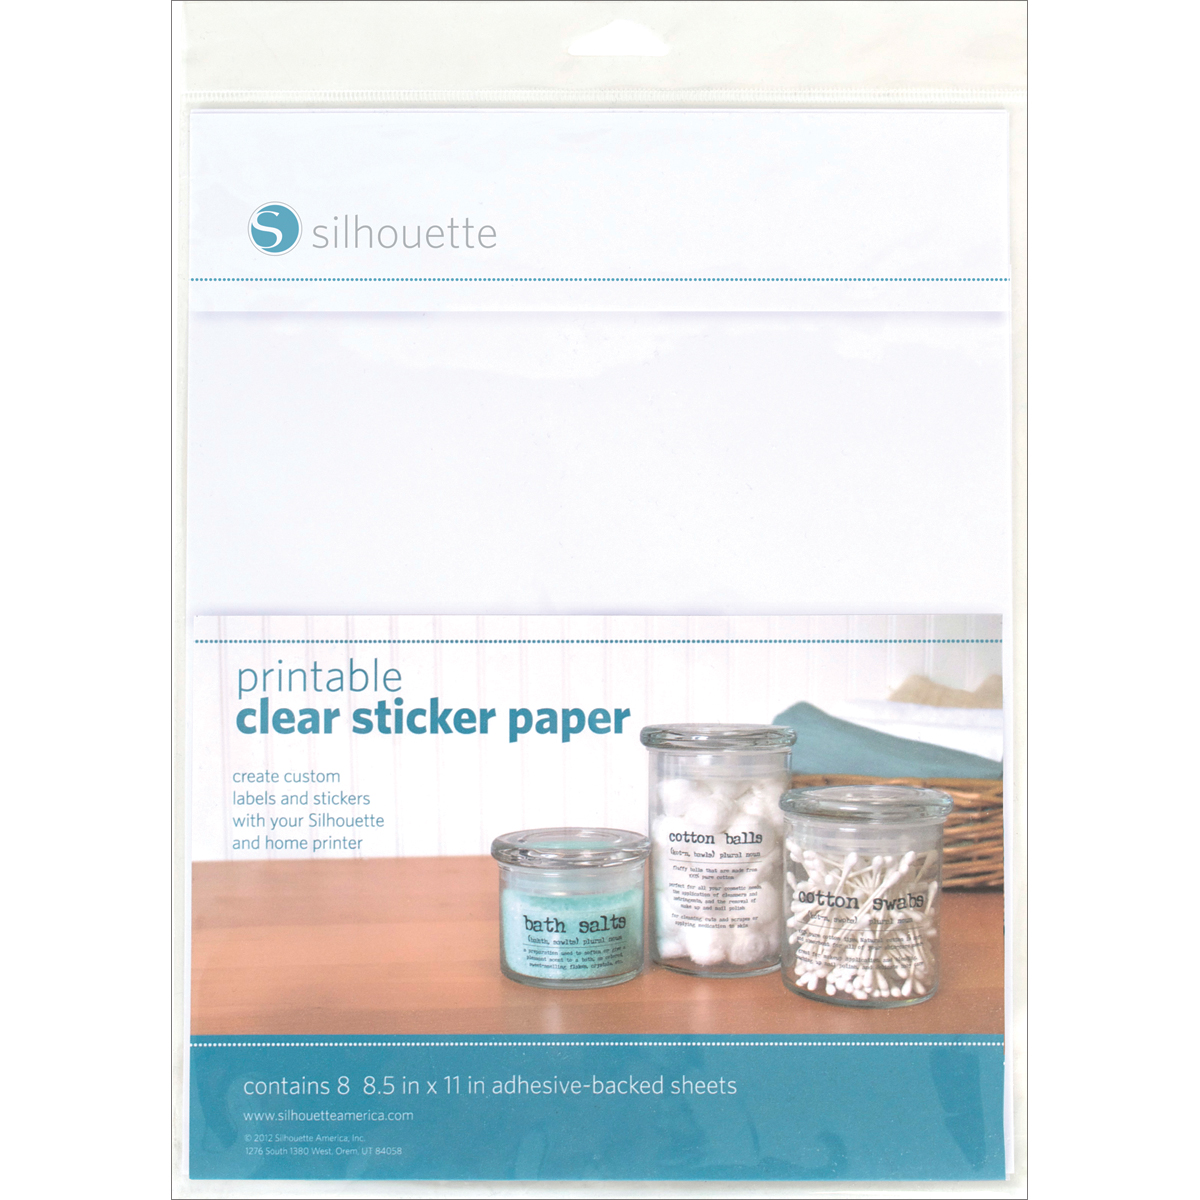 4 Images of Printable Clear Sticker Paper